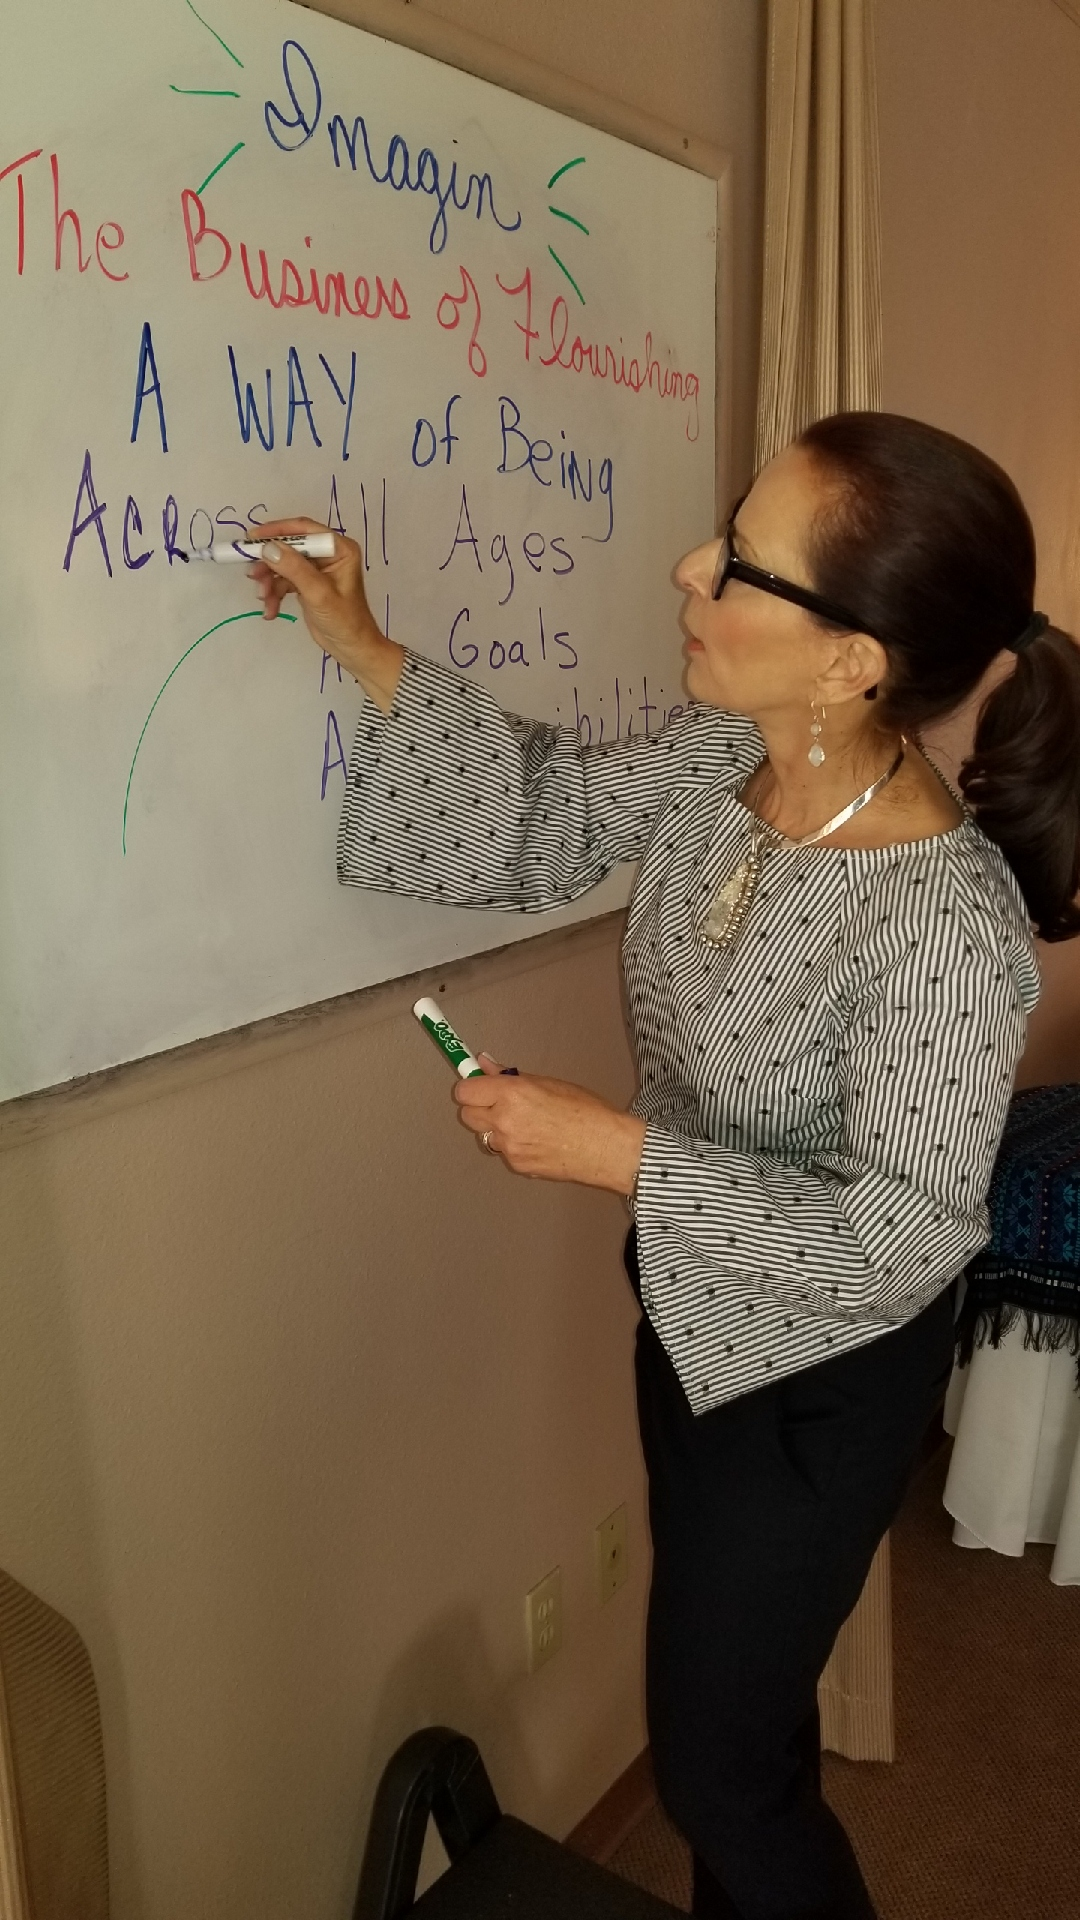 Andrea Goeglein writing on a white board